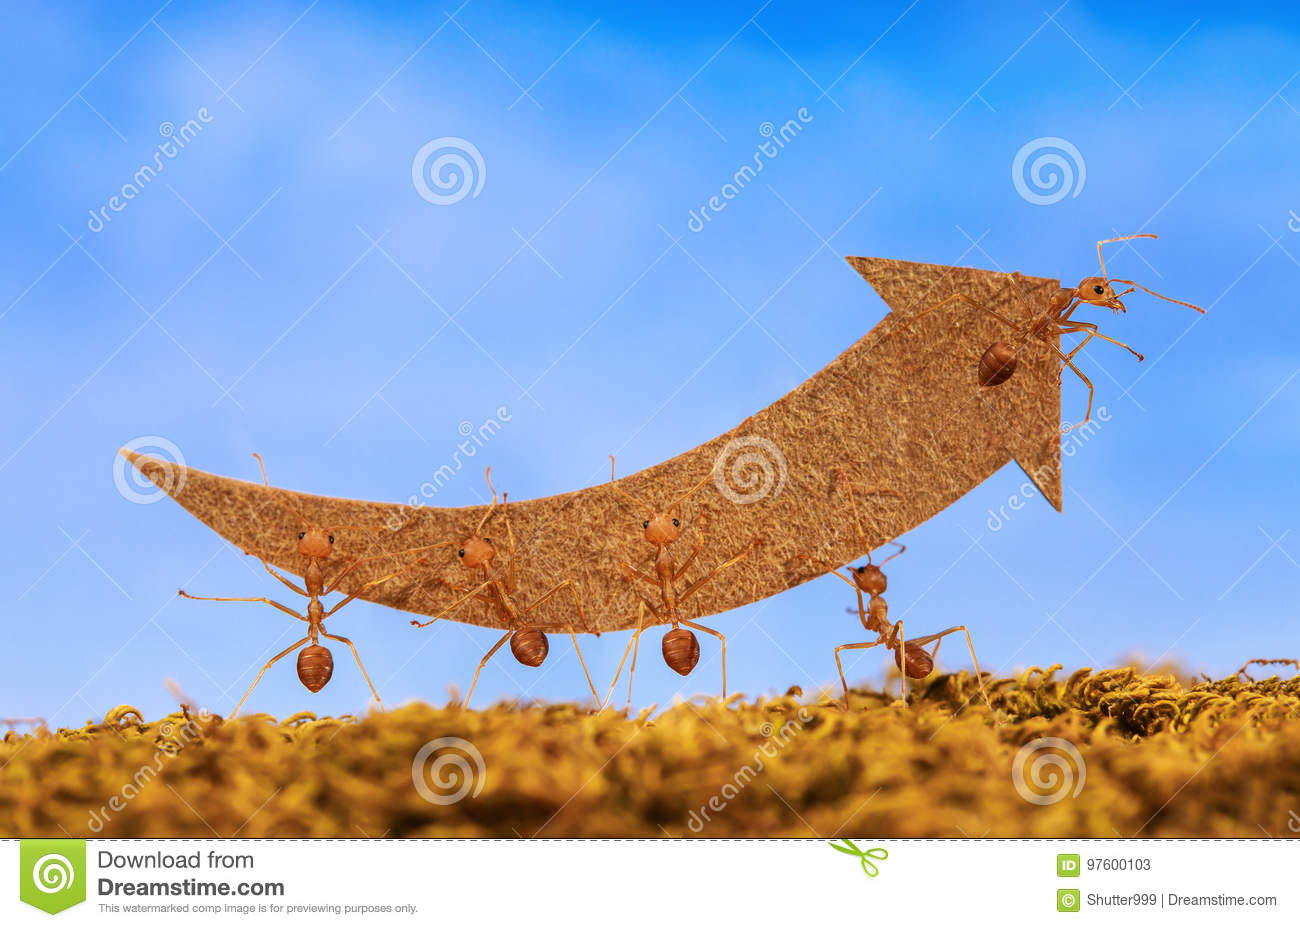 Ants carry rising arrow for business graph